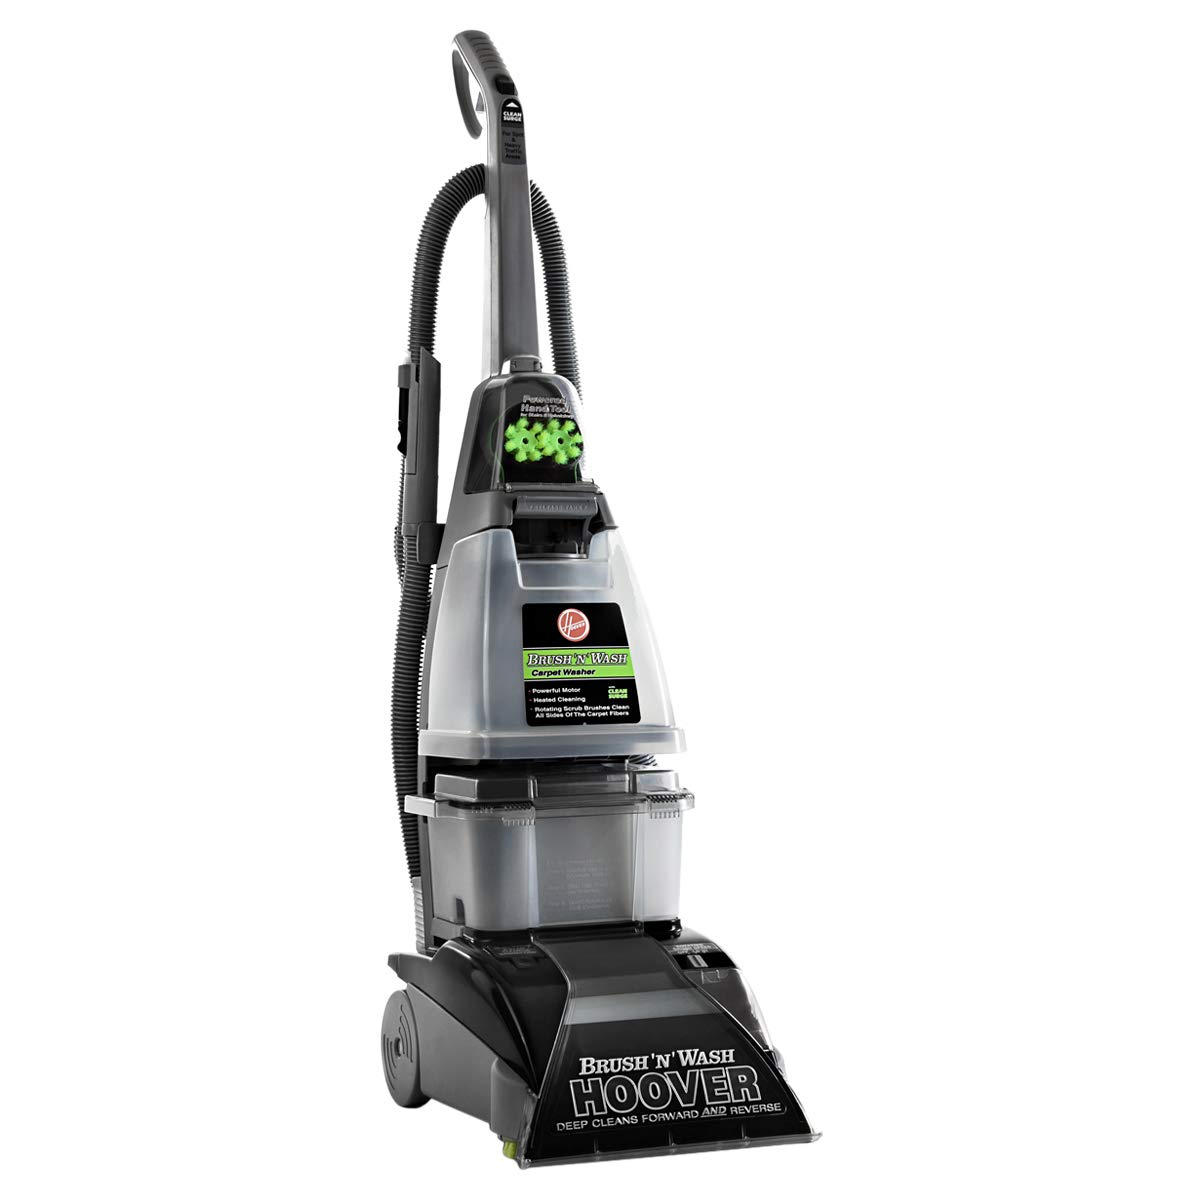 Hoover F5916 Brush 'N' Wash Carpet and Hardfloor Washer